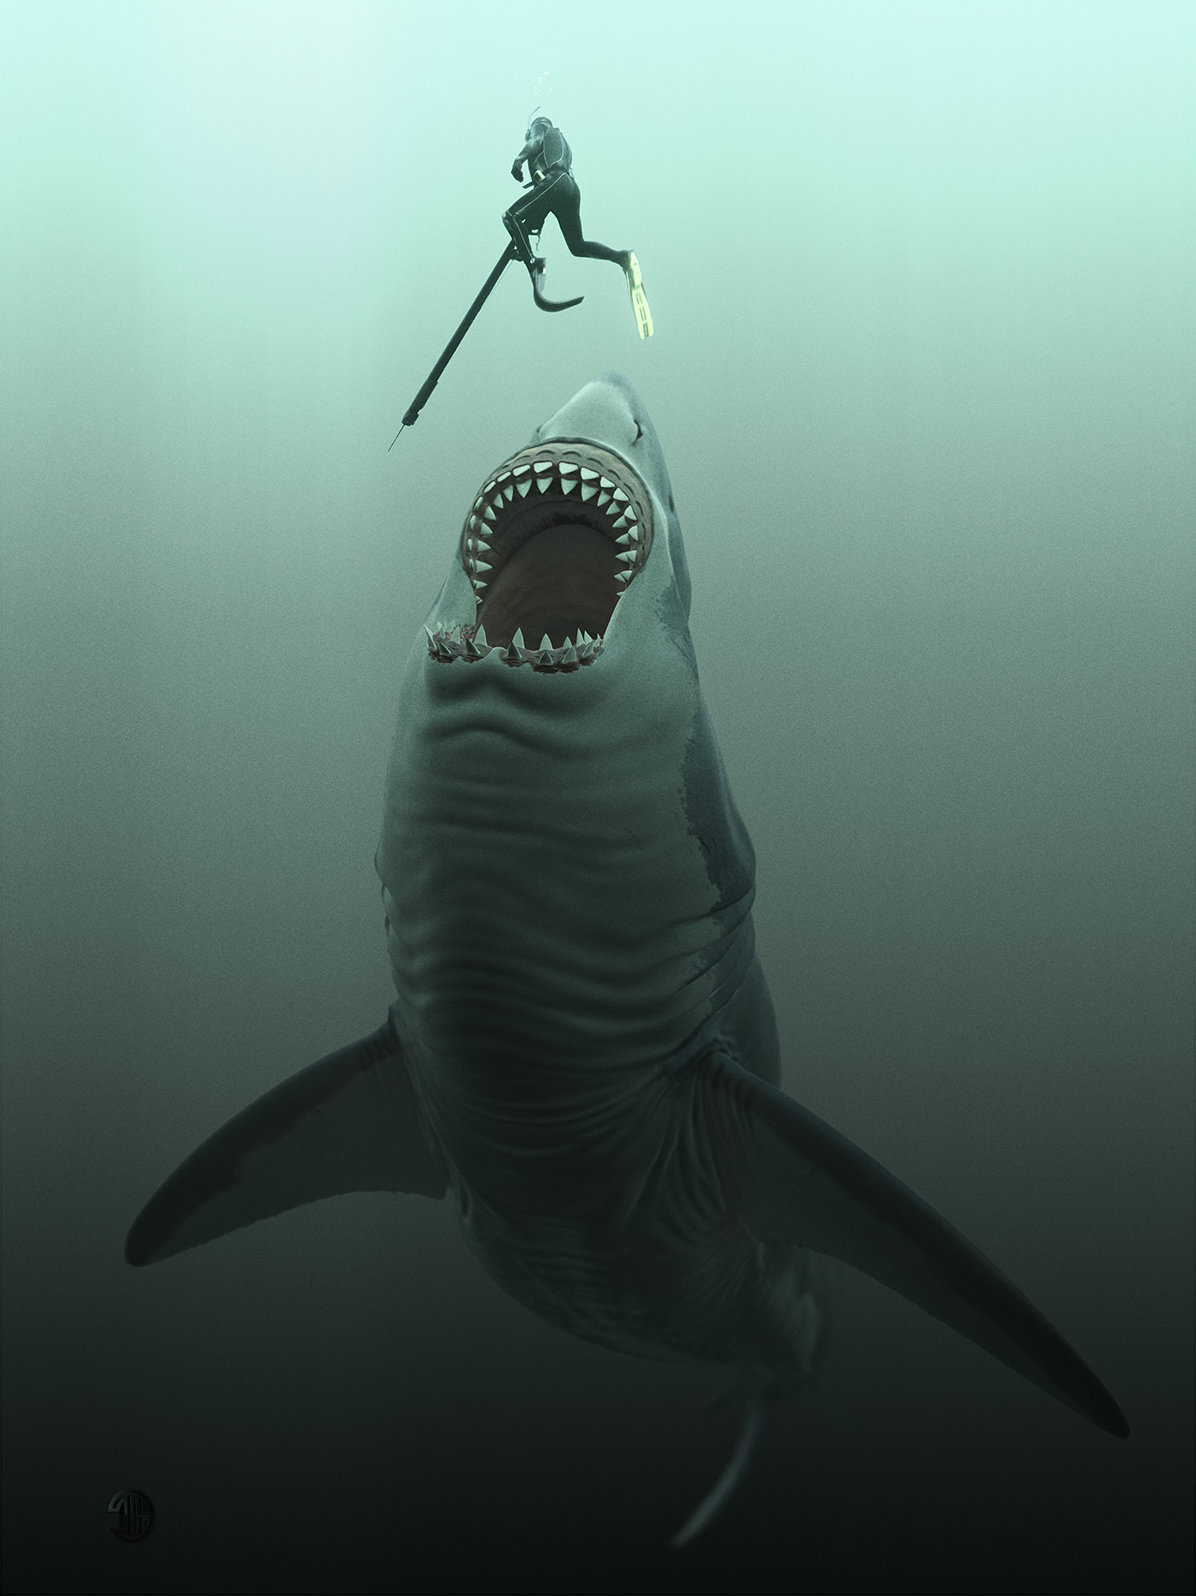 Thalassophobia Megalodon By Thierry Berengier